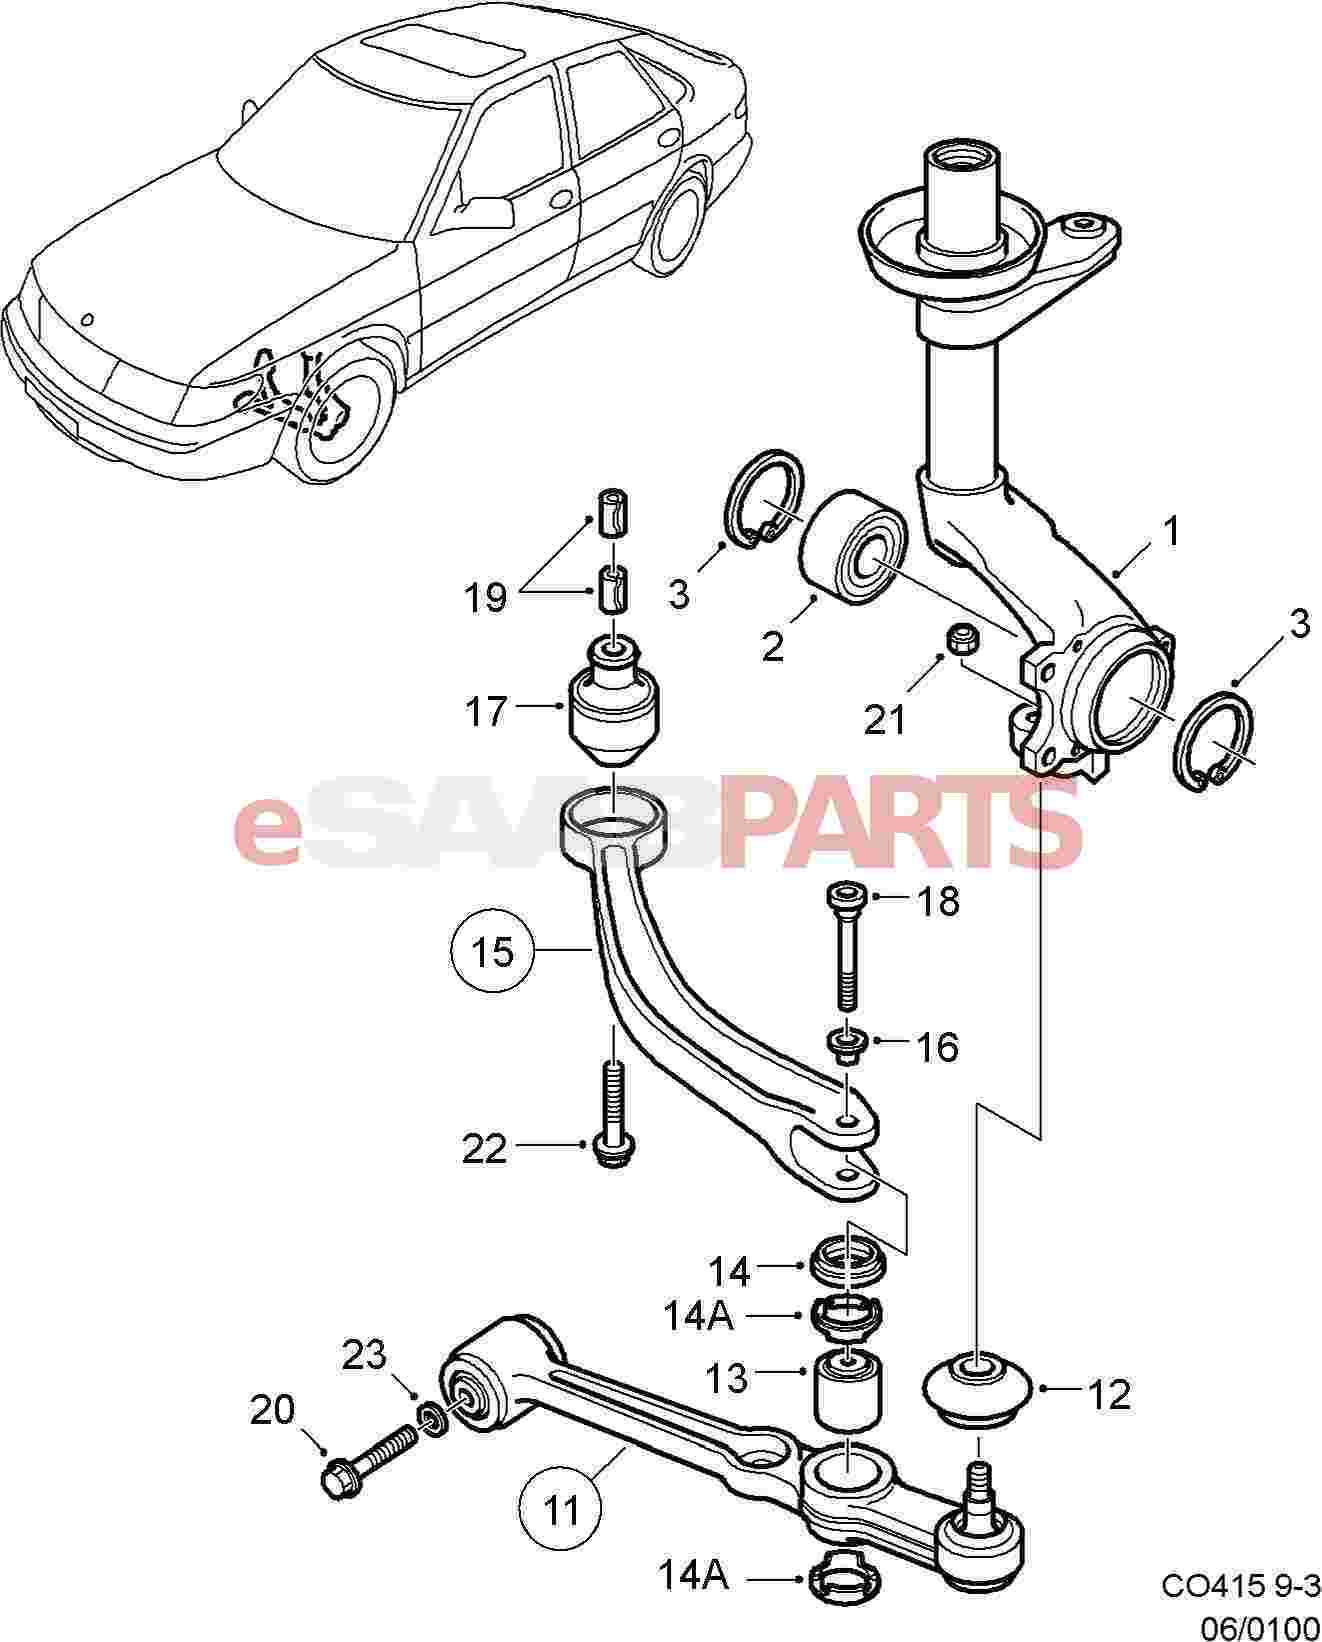 saab 900 ignition wiring diagram free picture